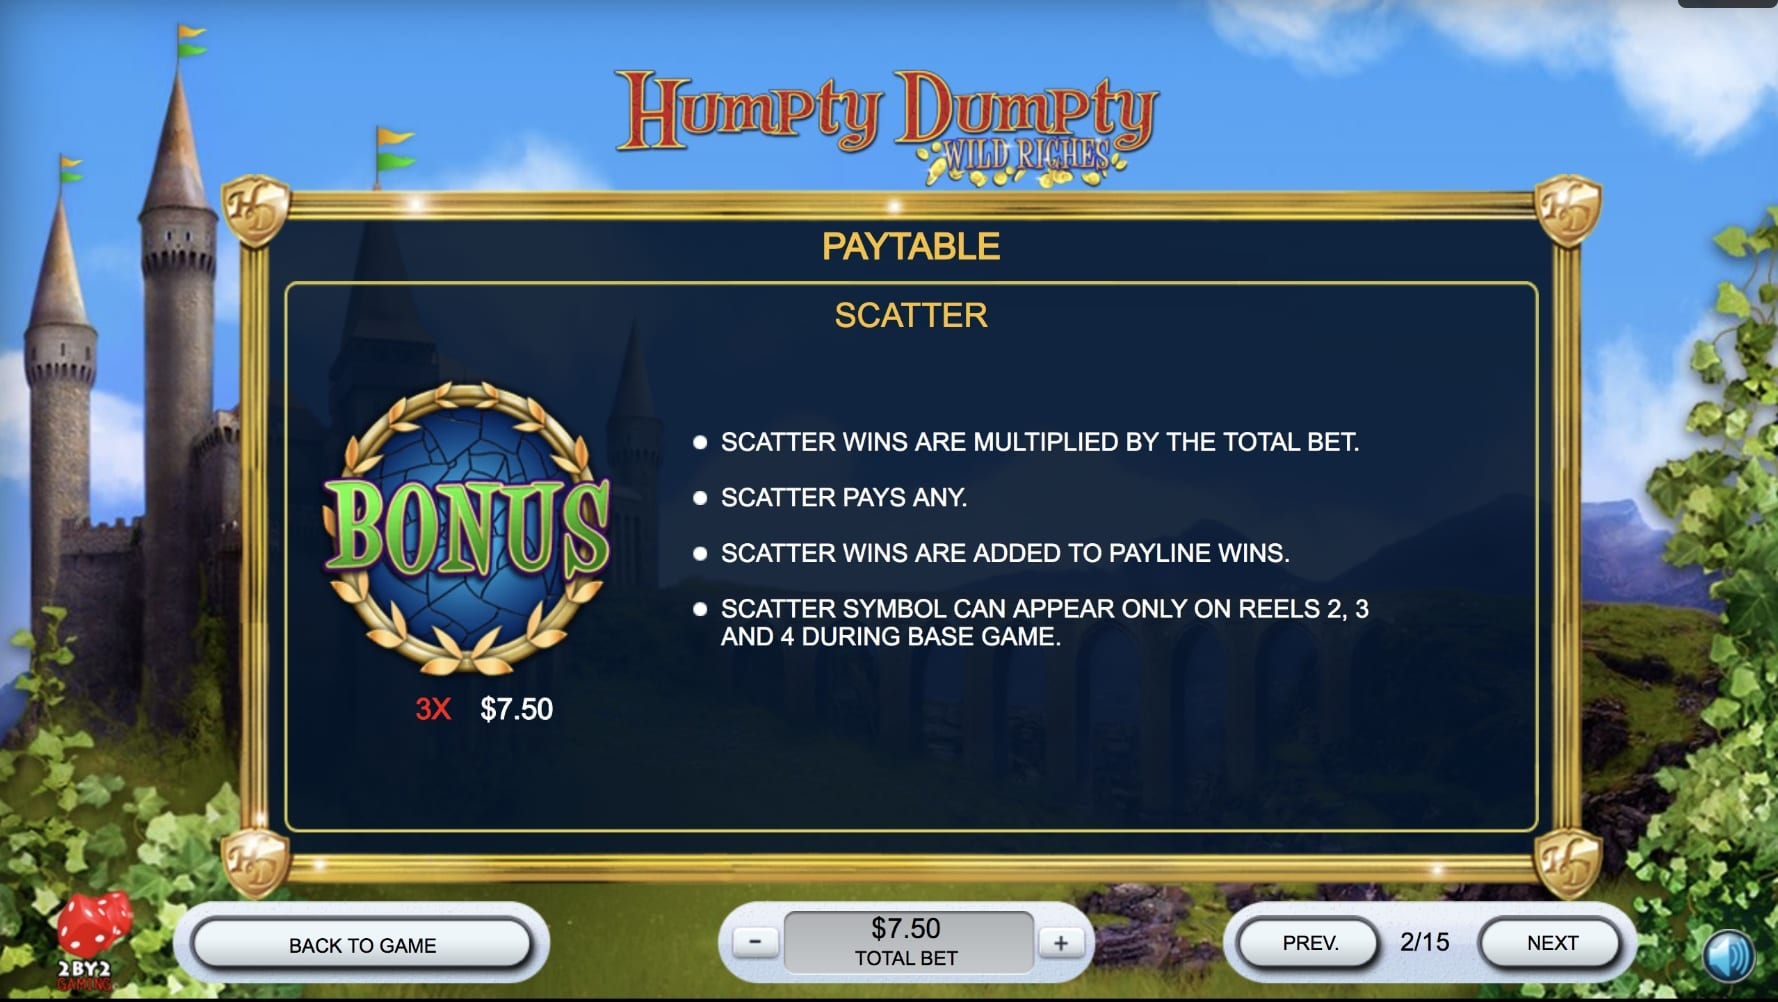 Humpty Dumpty online slots game paytable